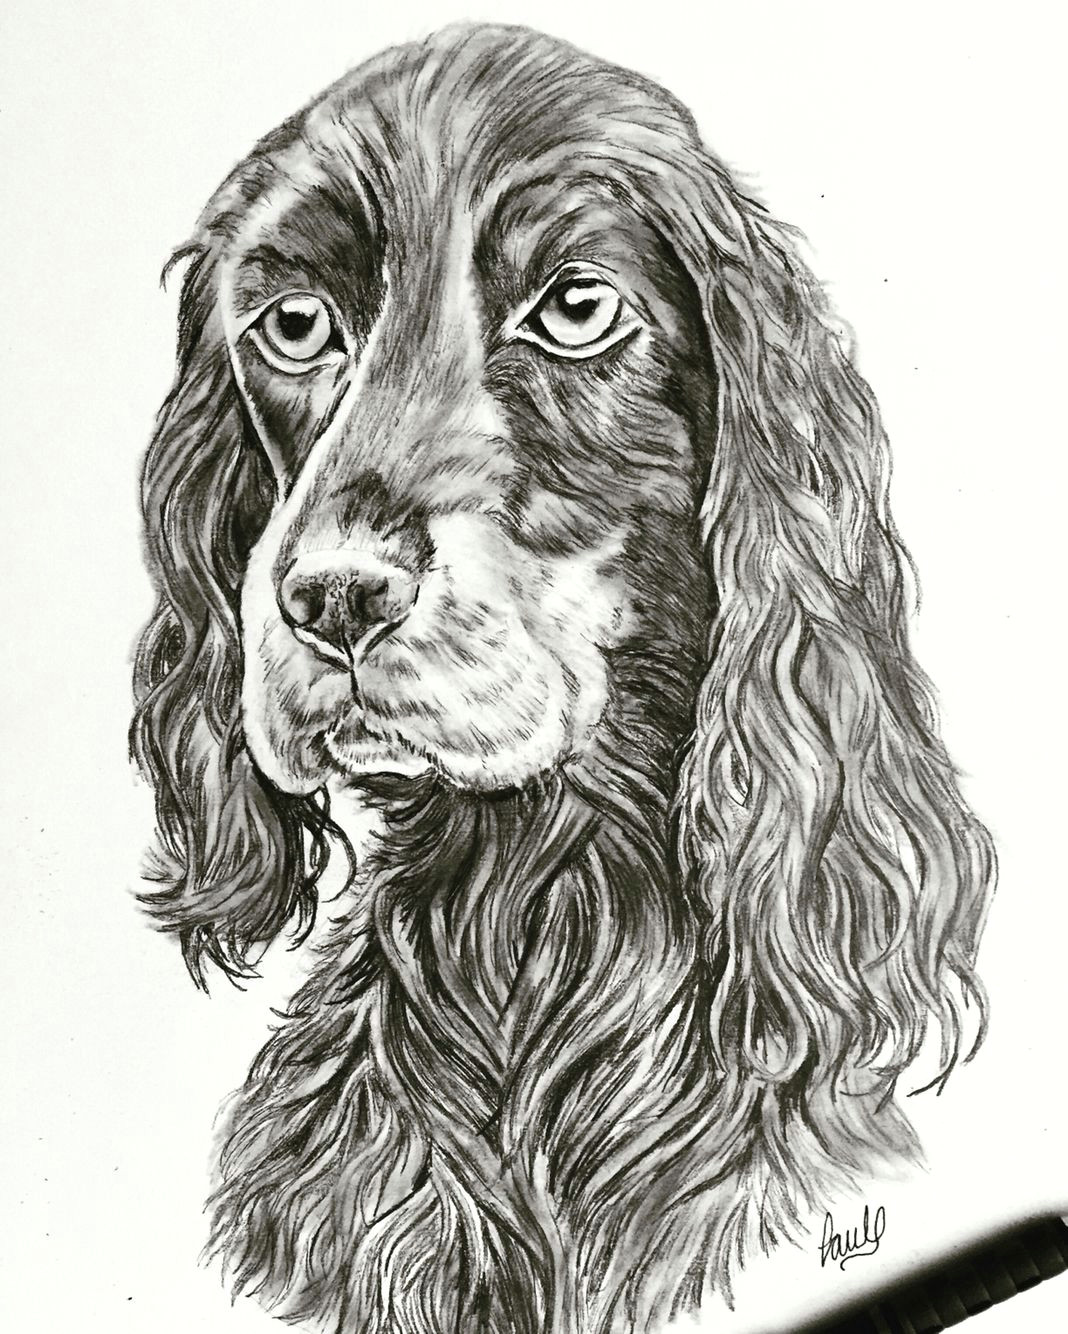 dog sketch done in pencil